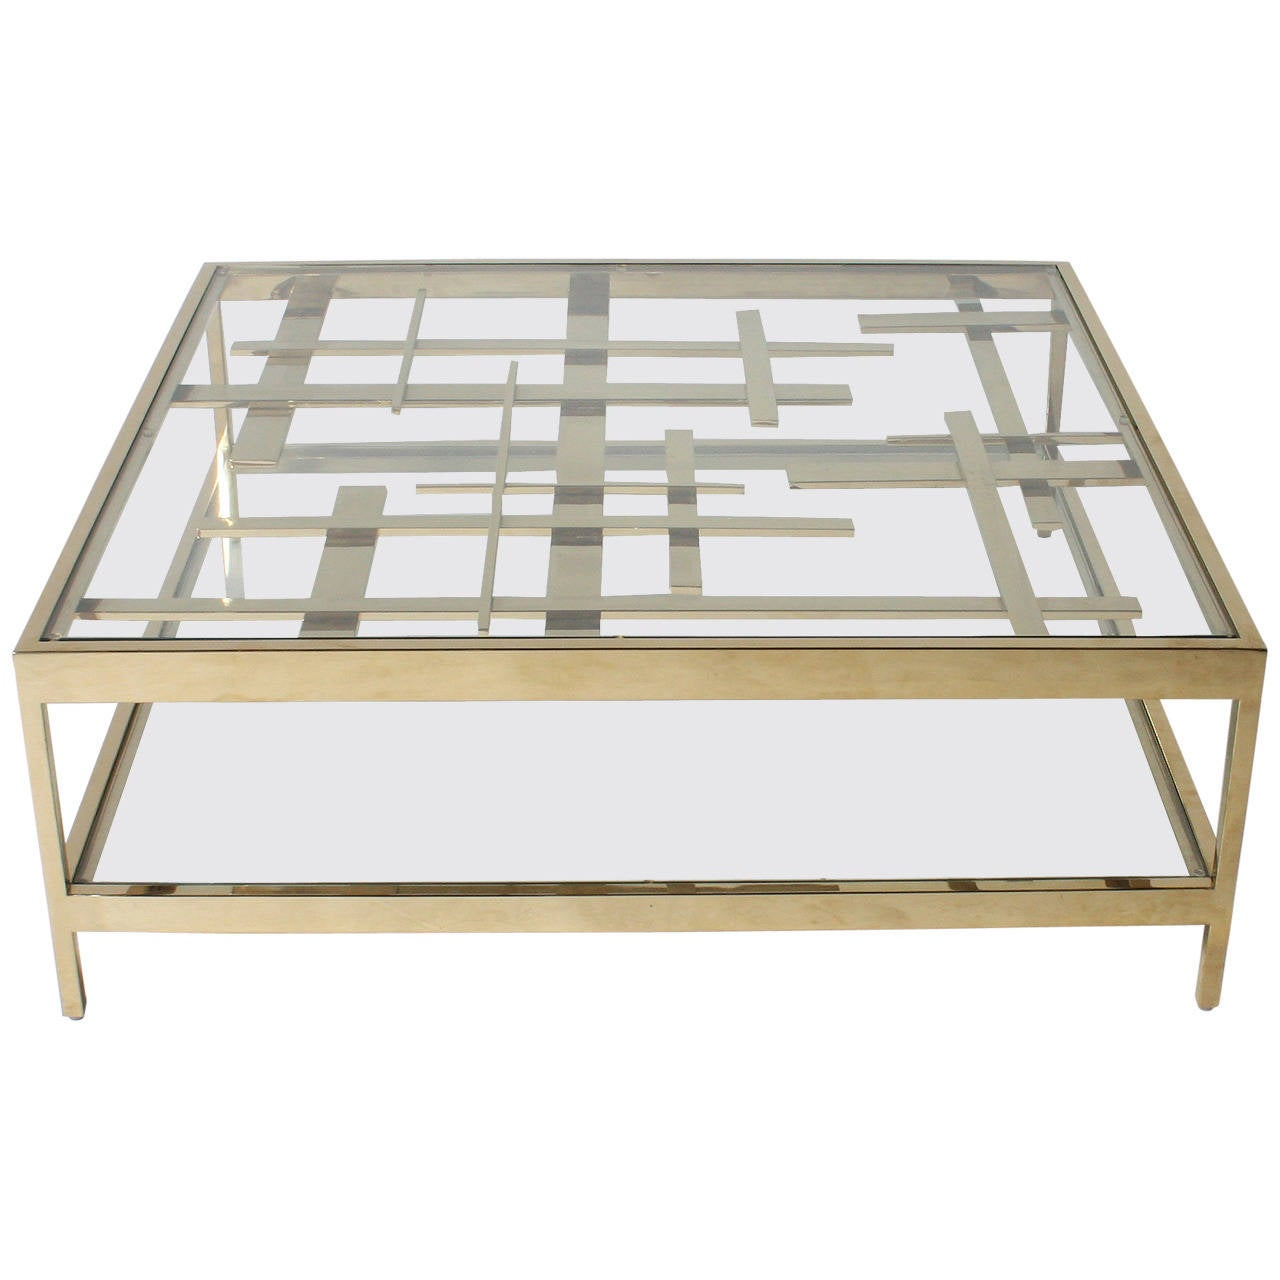 Coffee Table Inspired By Piet Mondrian In Brass C 1970 At